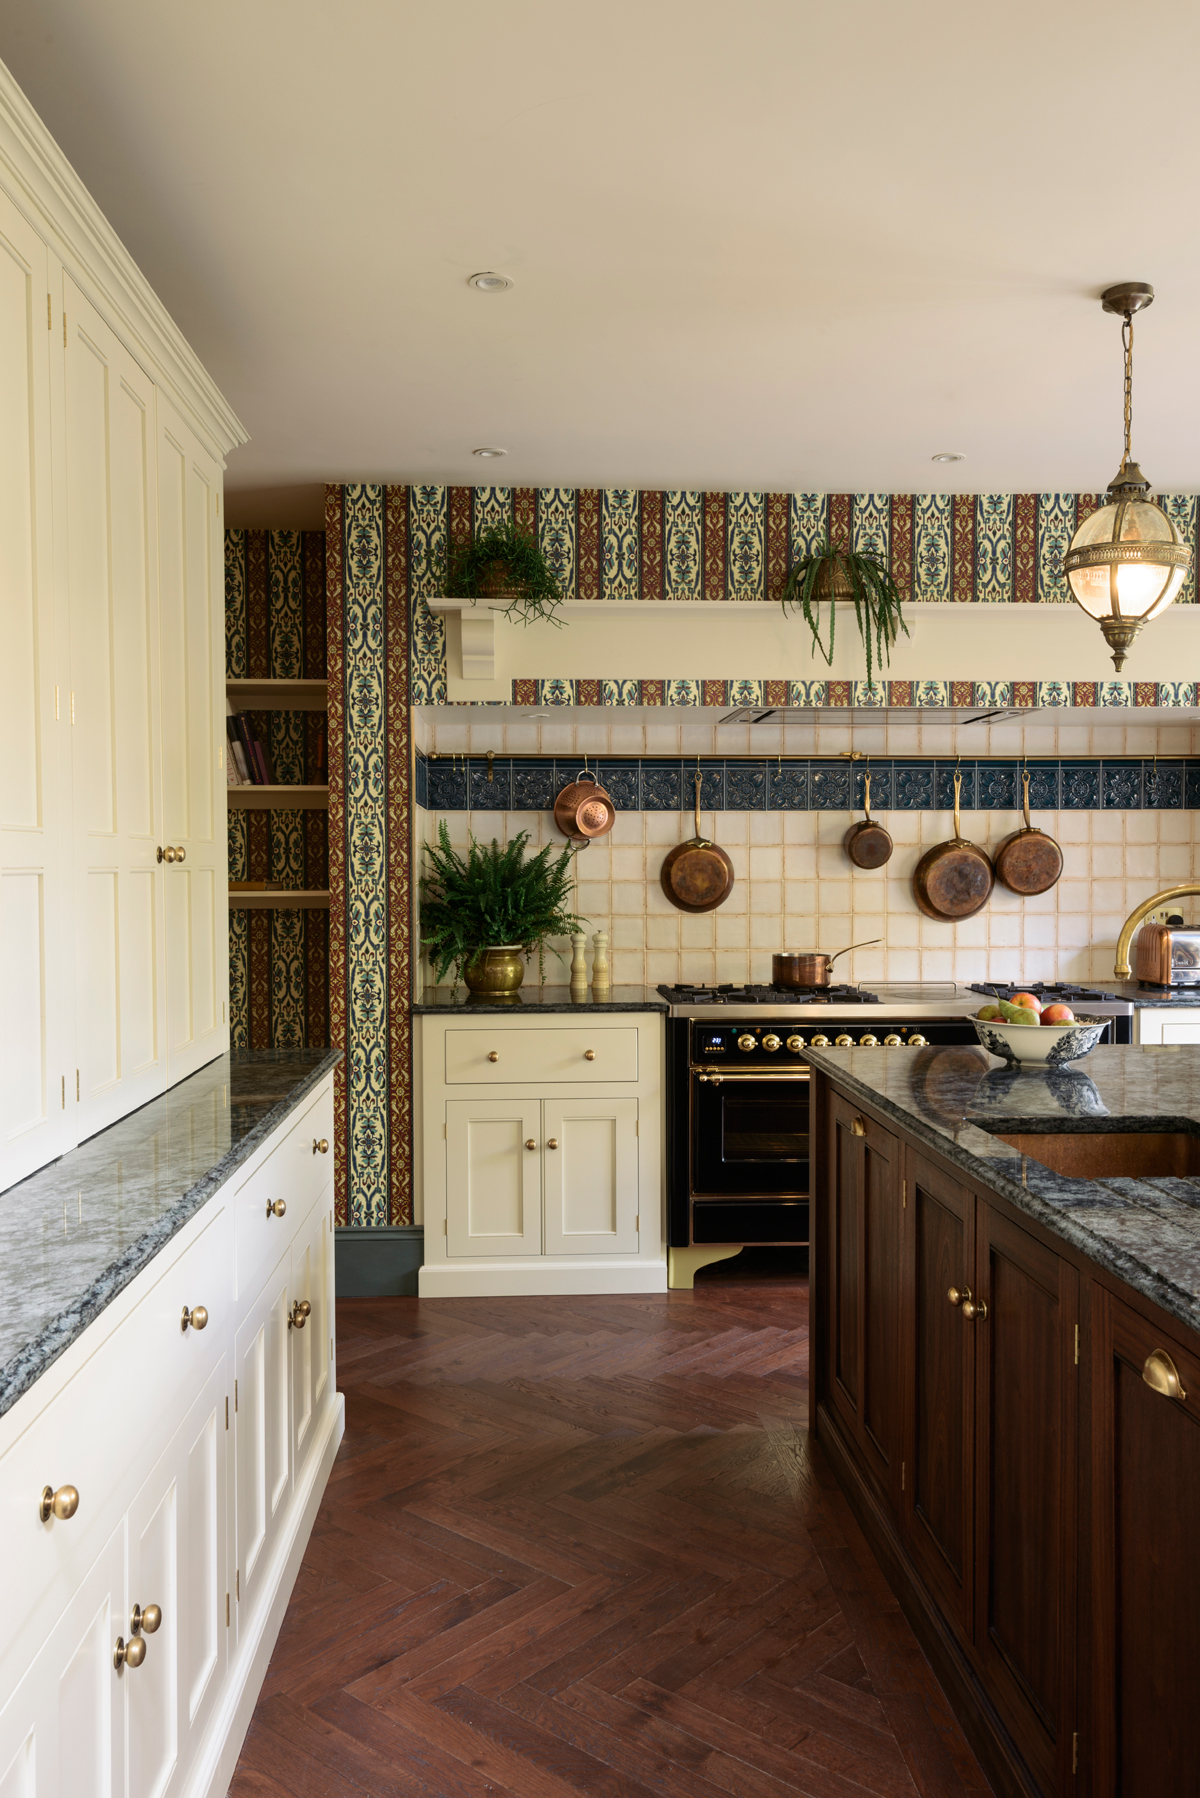 Collections of shimmering copper pans hung from an aged brass rail above the range